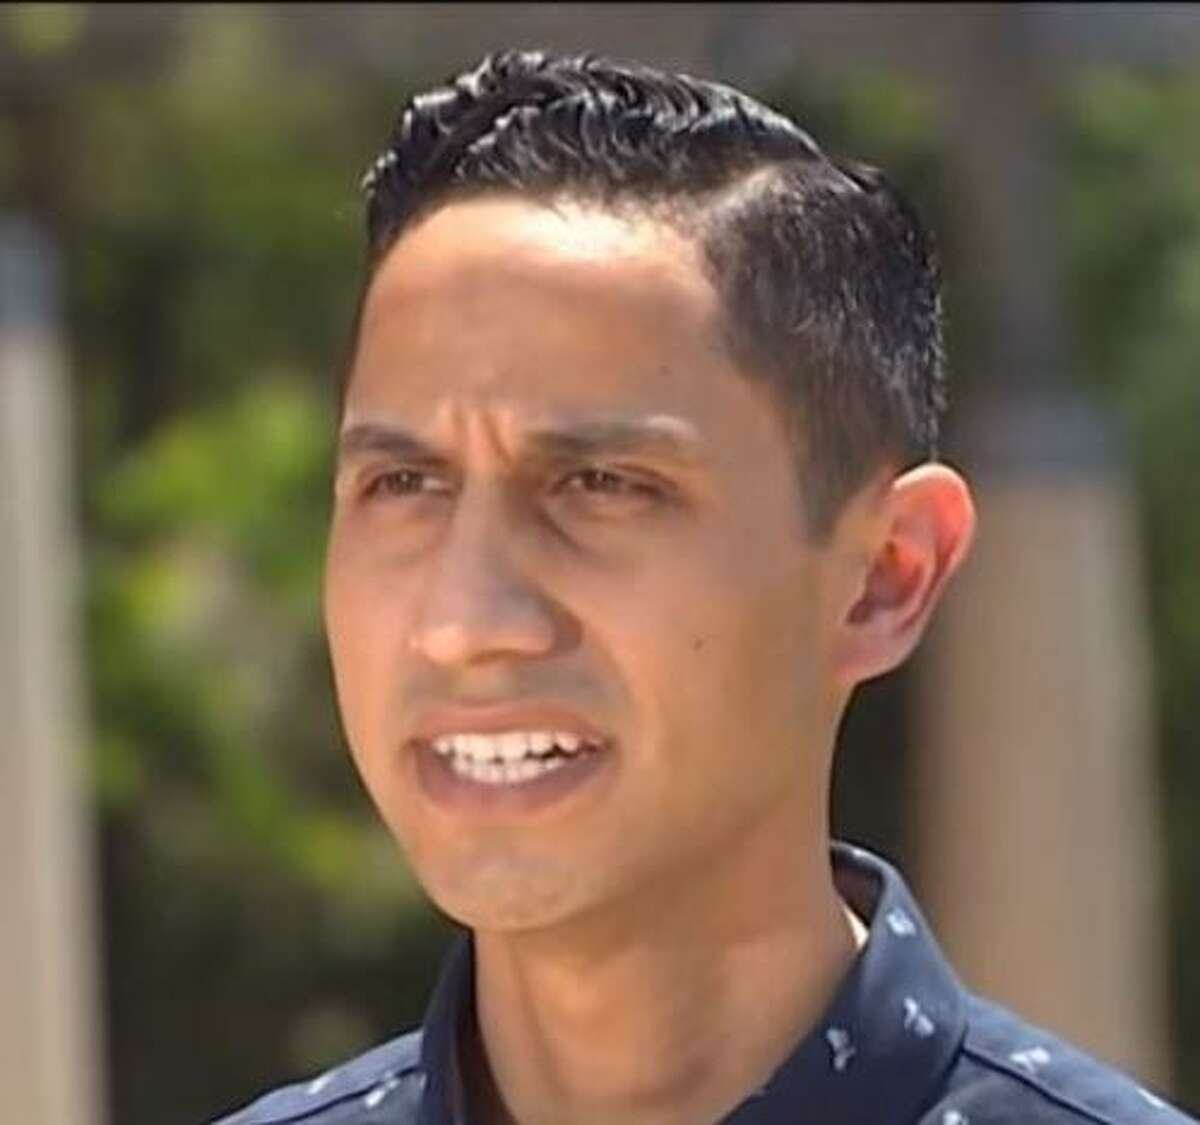 Jason Rocha, CEO and founder of The Woodlands Pride, is a U.S. Army veteran who wants to bring acceptance, inclusion and unity to Montgomery County for everyone in the LGBTQIA community as well as their supporters.